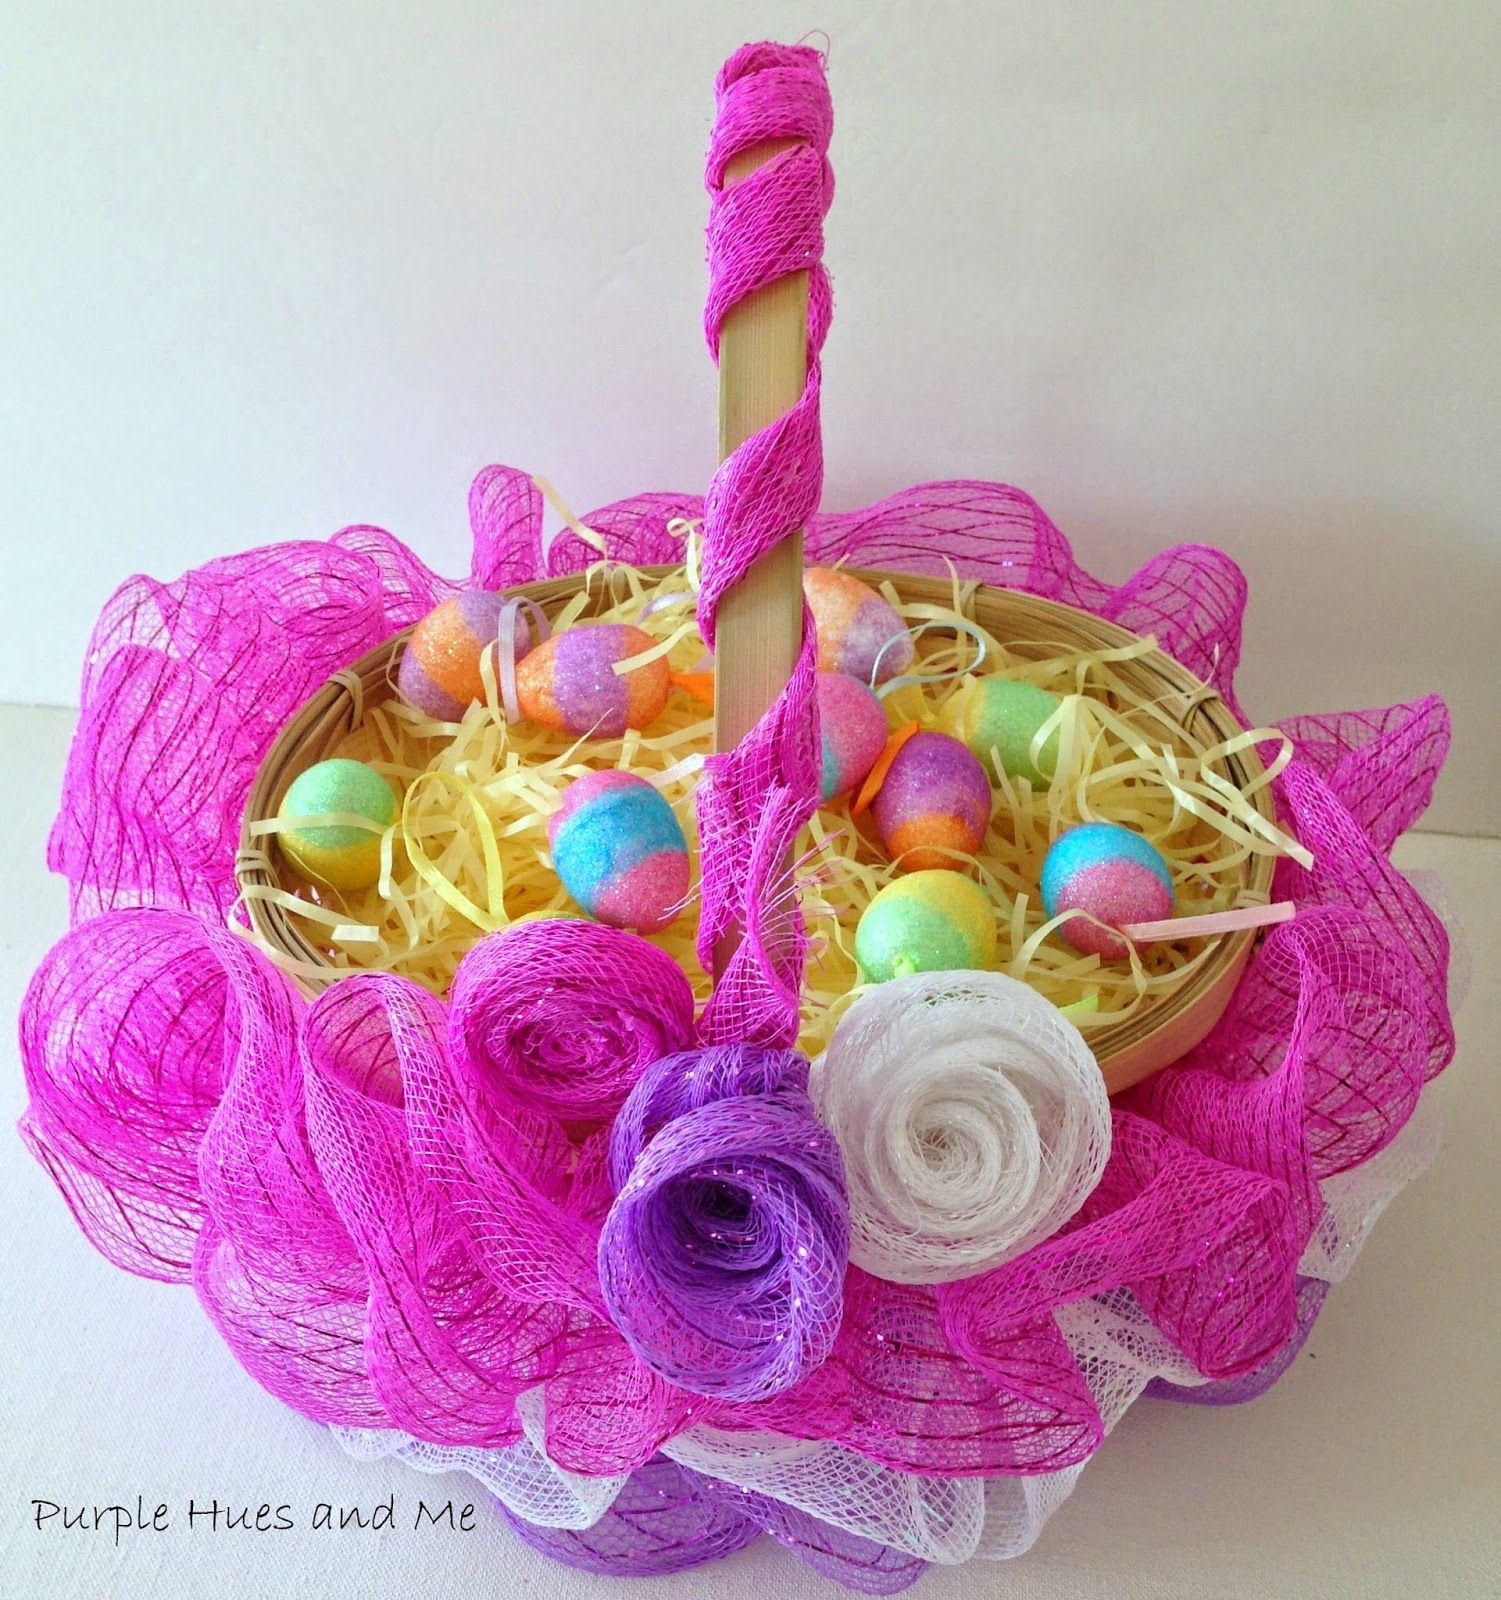 Crafts with deco mesh - Tutorial For Creating A Ruffled Deco Mesh Easter Basket By Purple Hues And Me